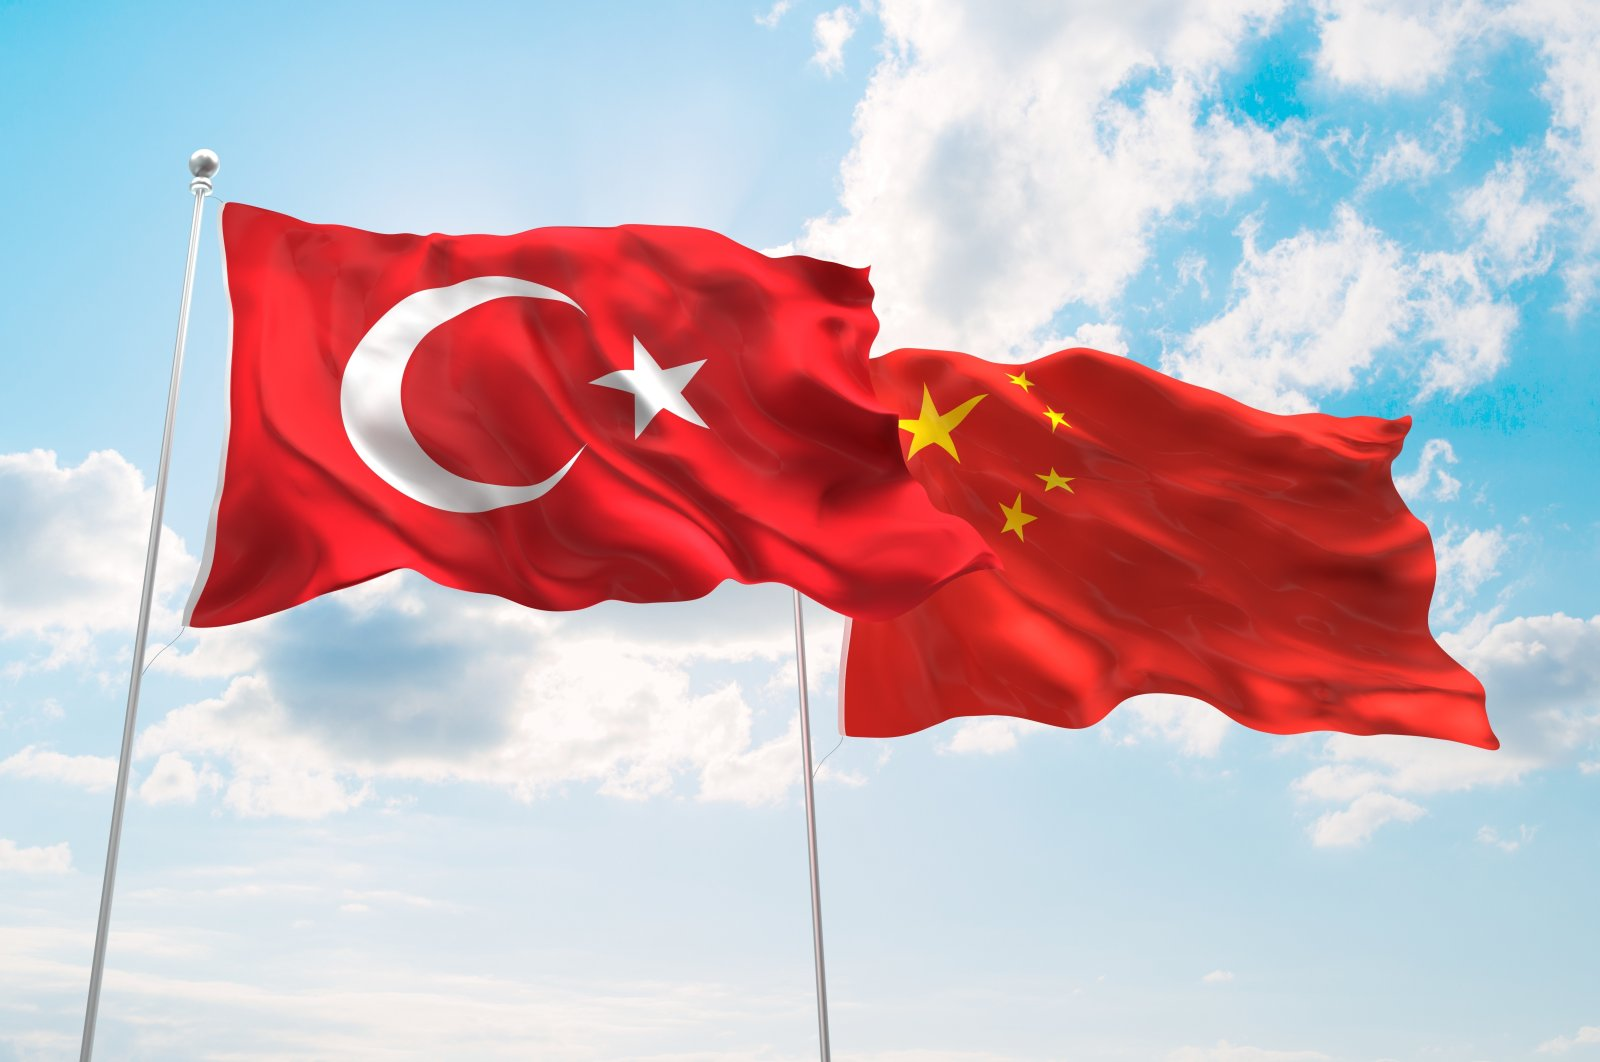 The flags of Turkey and China wave against a blue spring sky. (Shutterstock Photo)